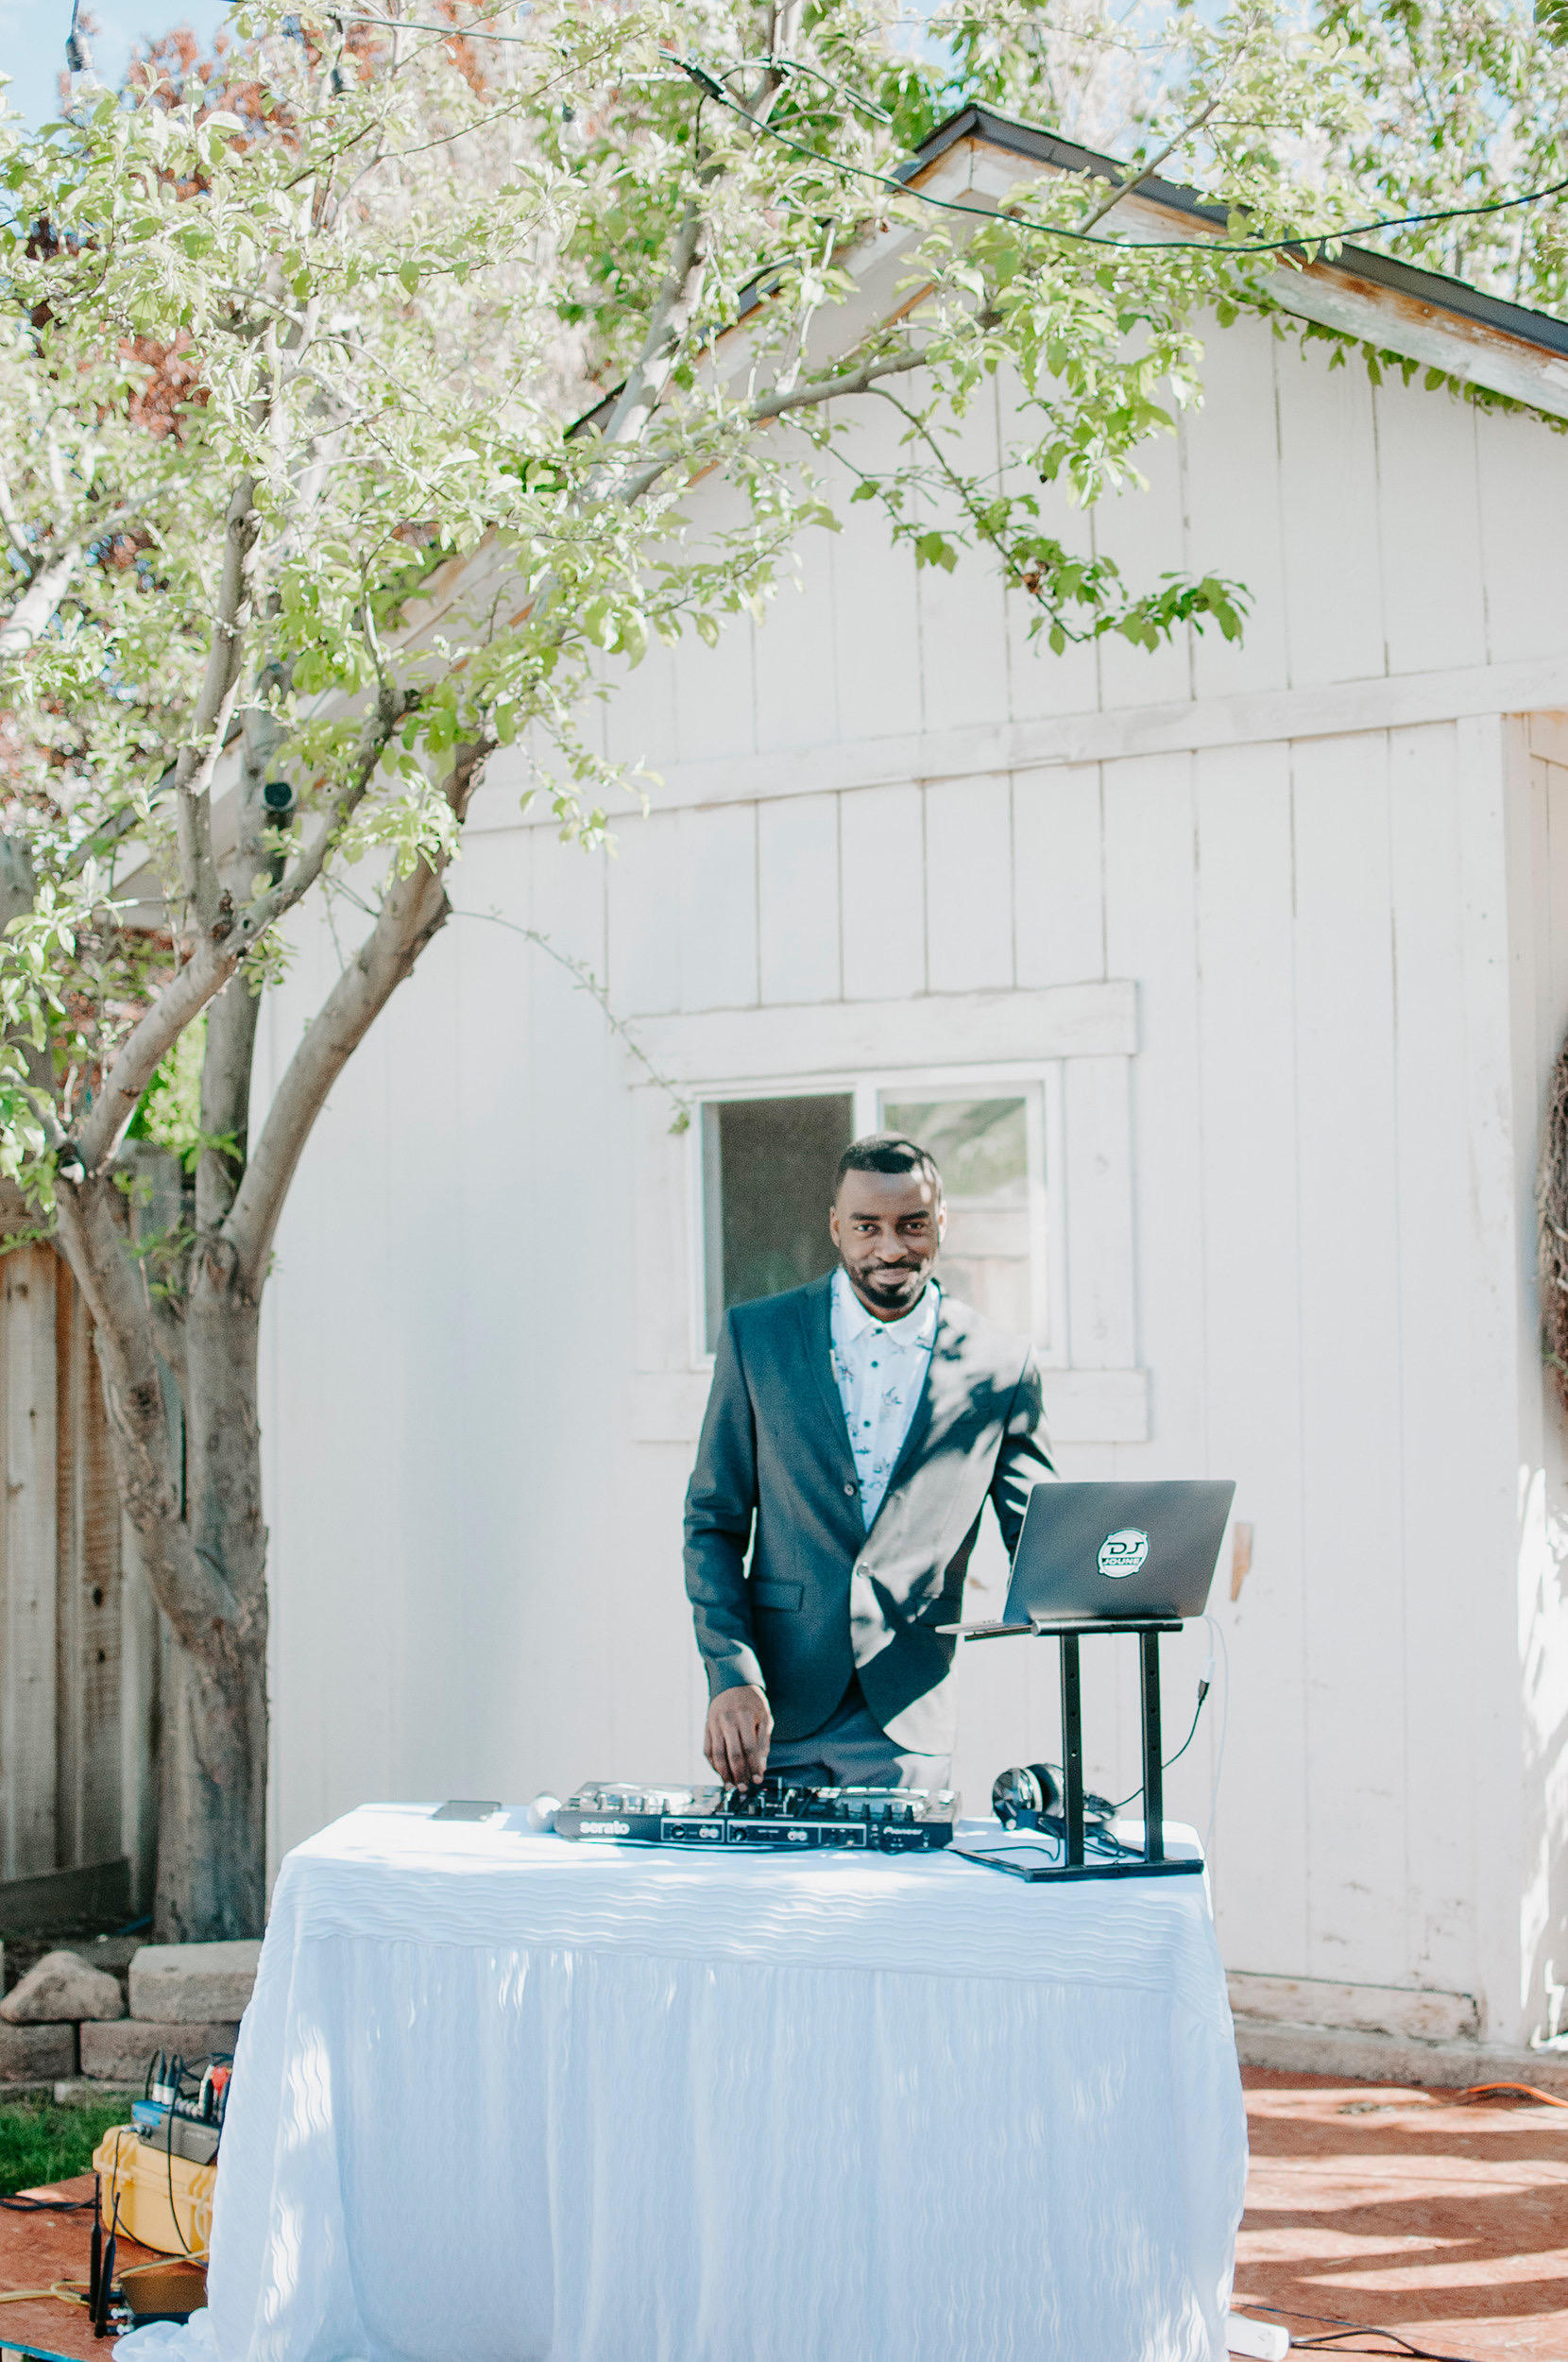 Utah Wedding and Events DJ